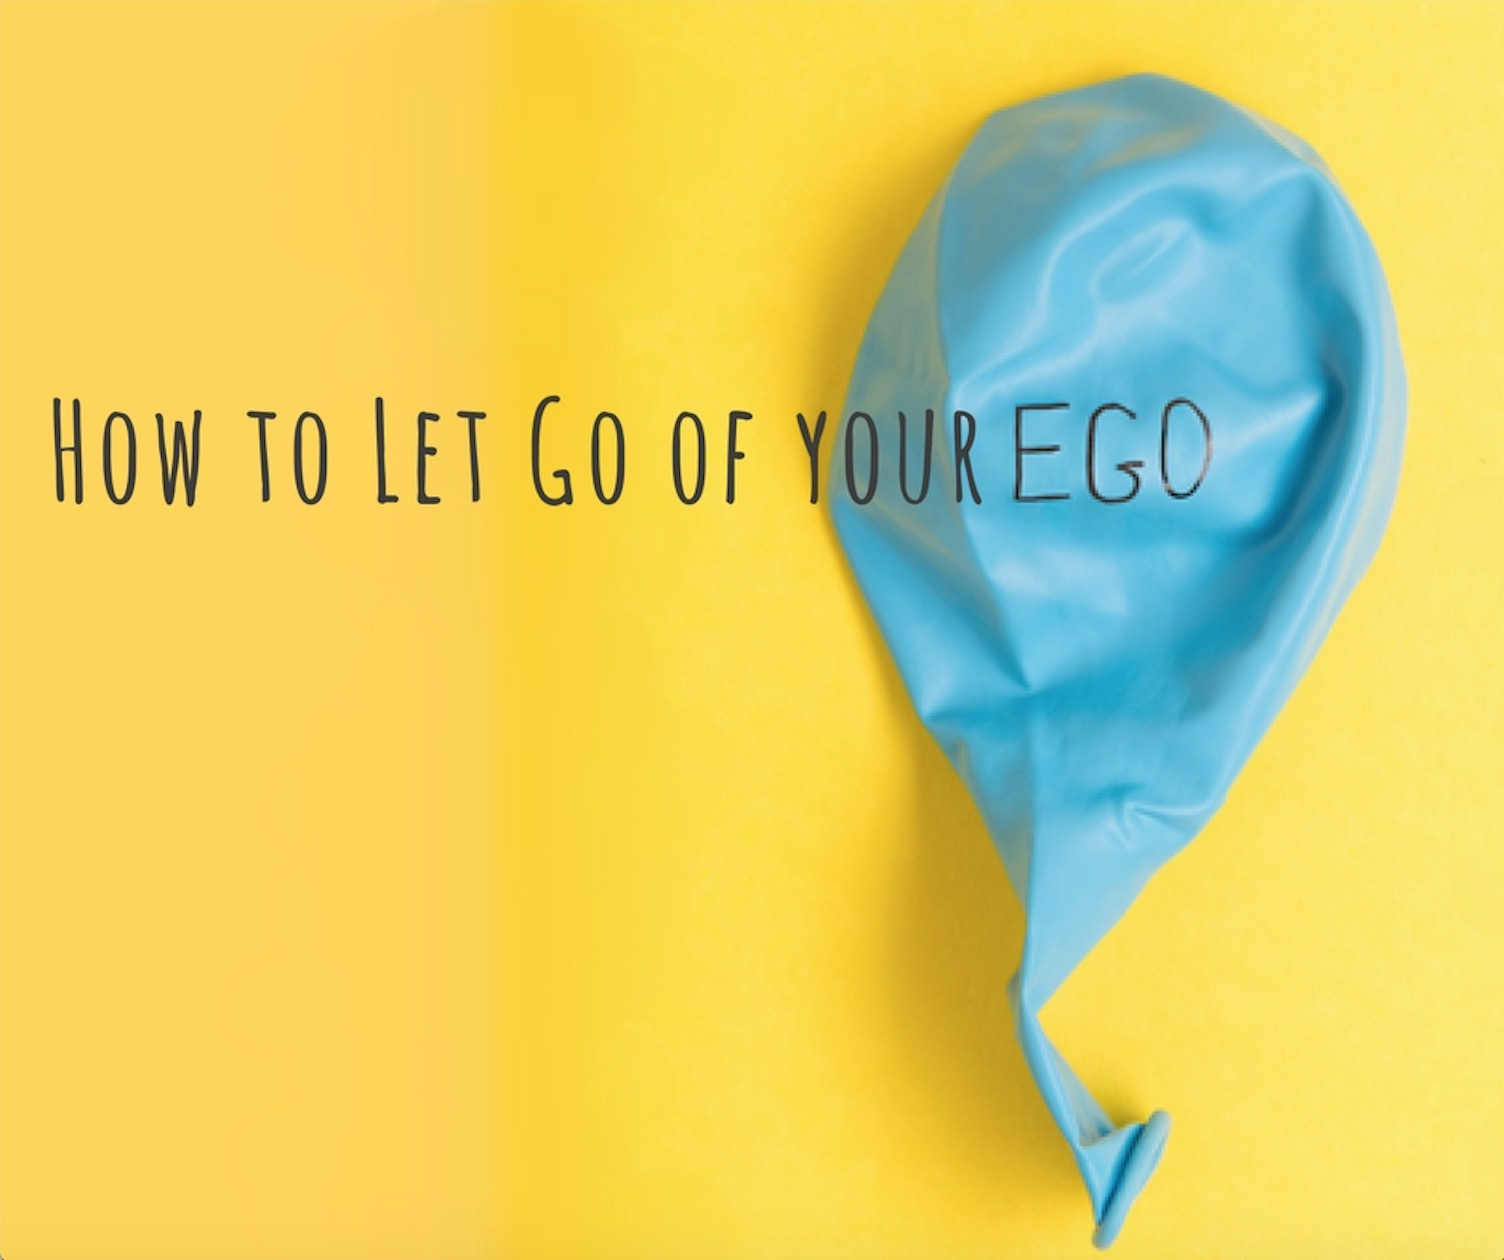 How to Let Go of Your Ego